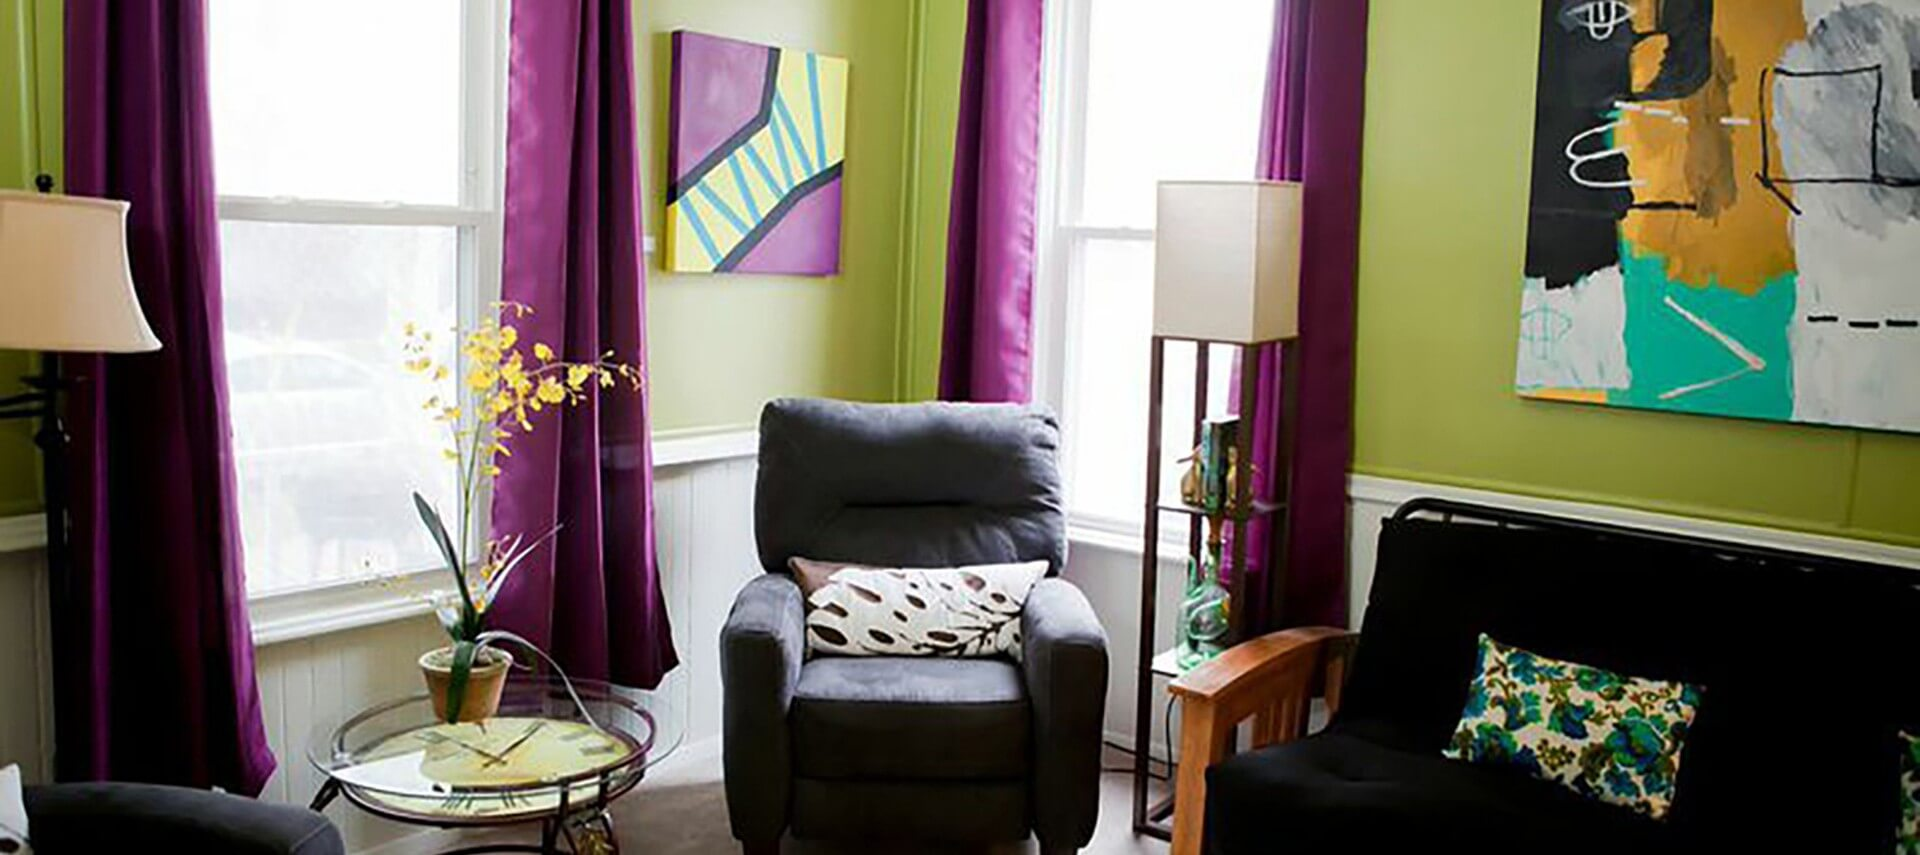 Room with lime green walls, purple drapes holds two upholstered chairs and a futon.